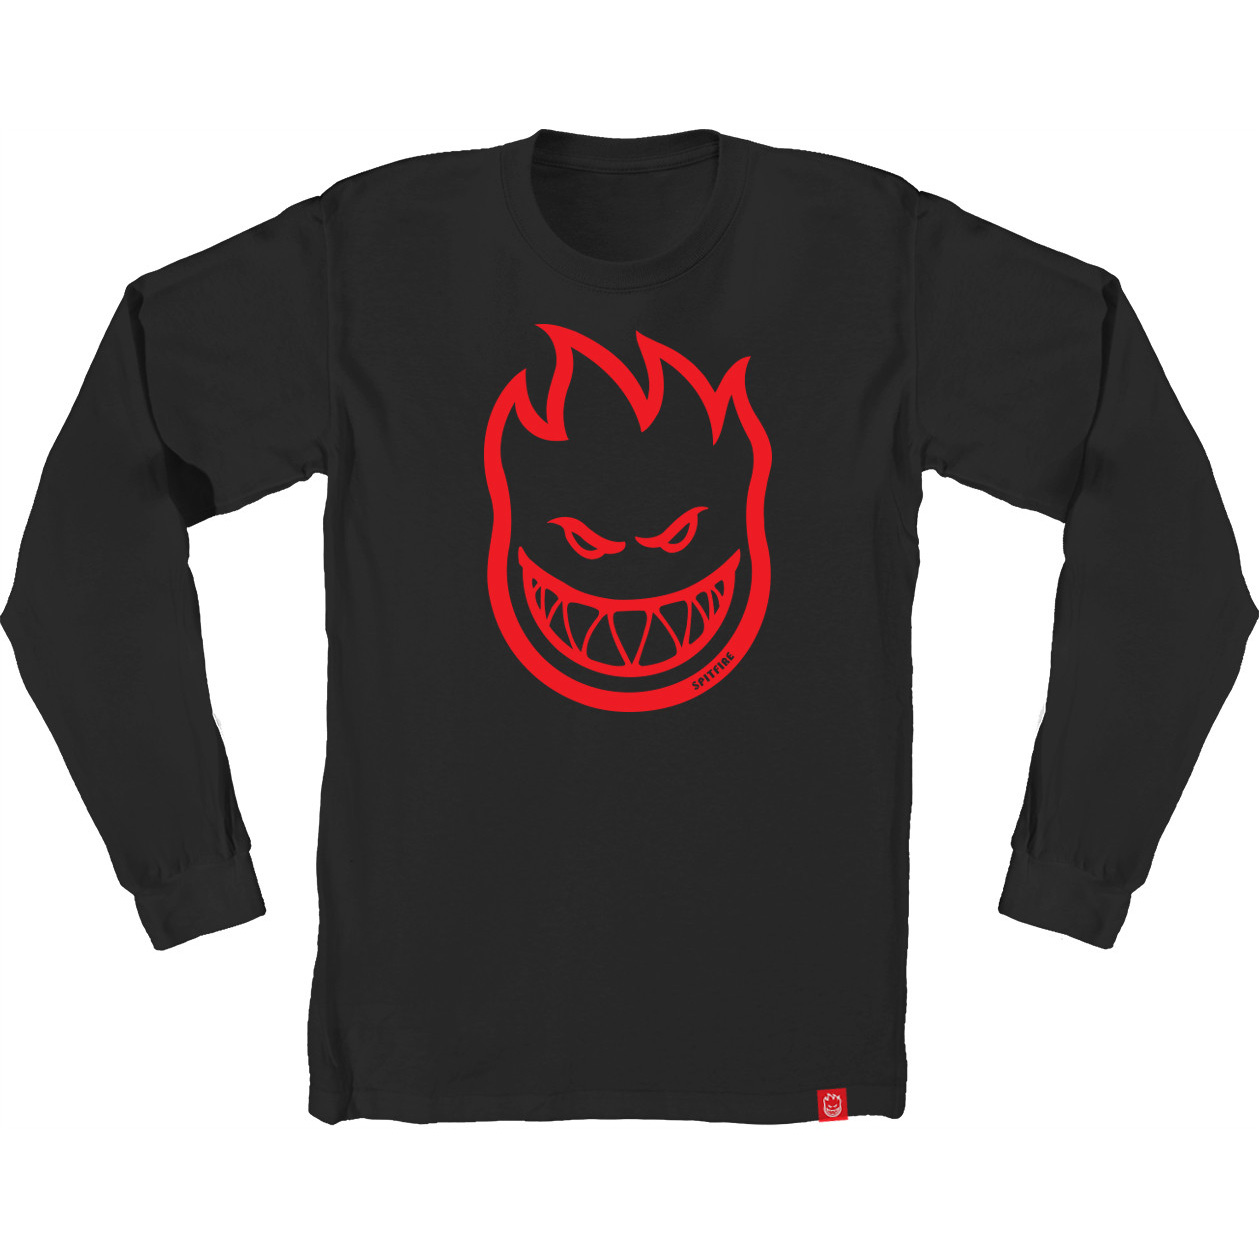 SF LS TEE BIGHEAD BLK/RED L - Click to enlarge